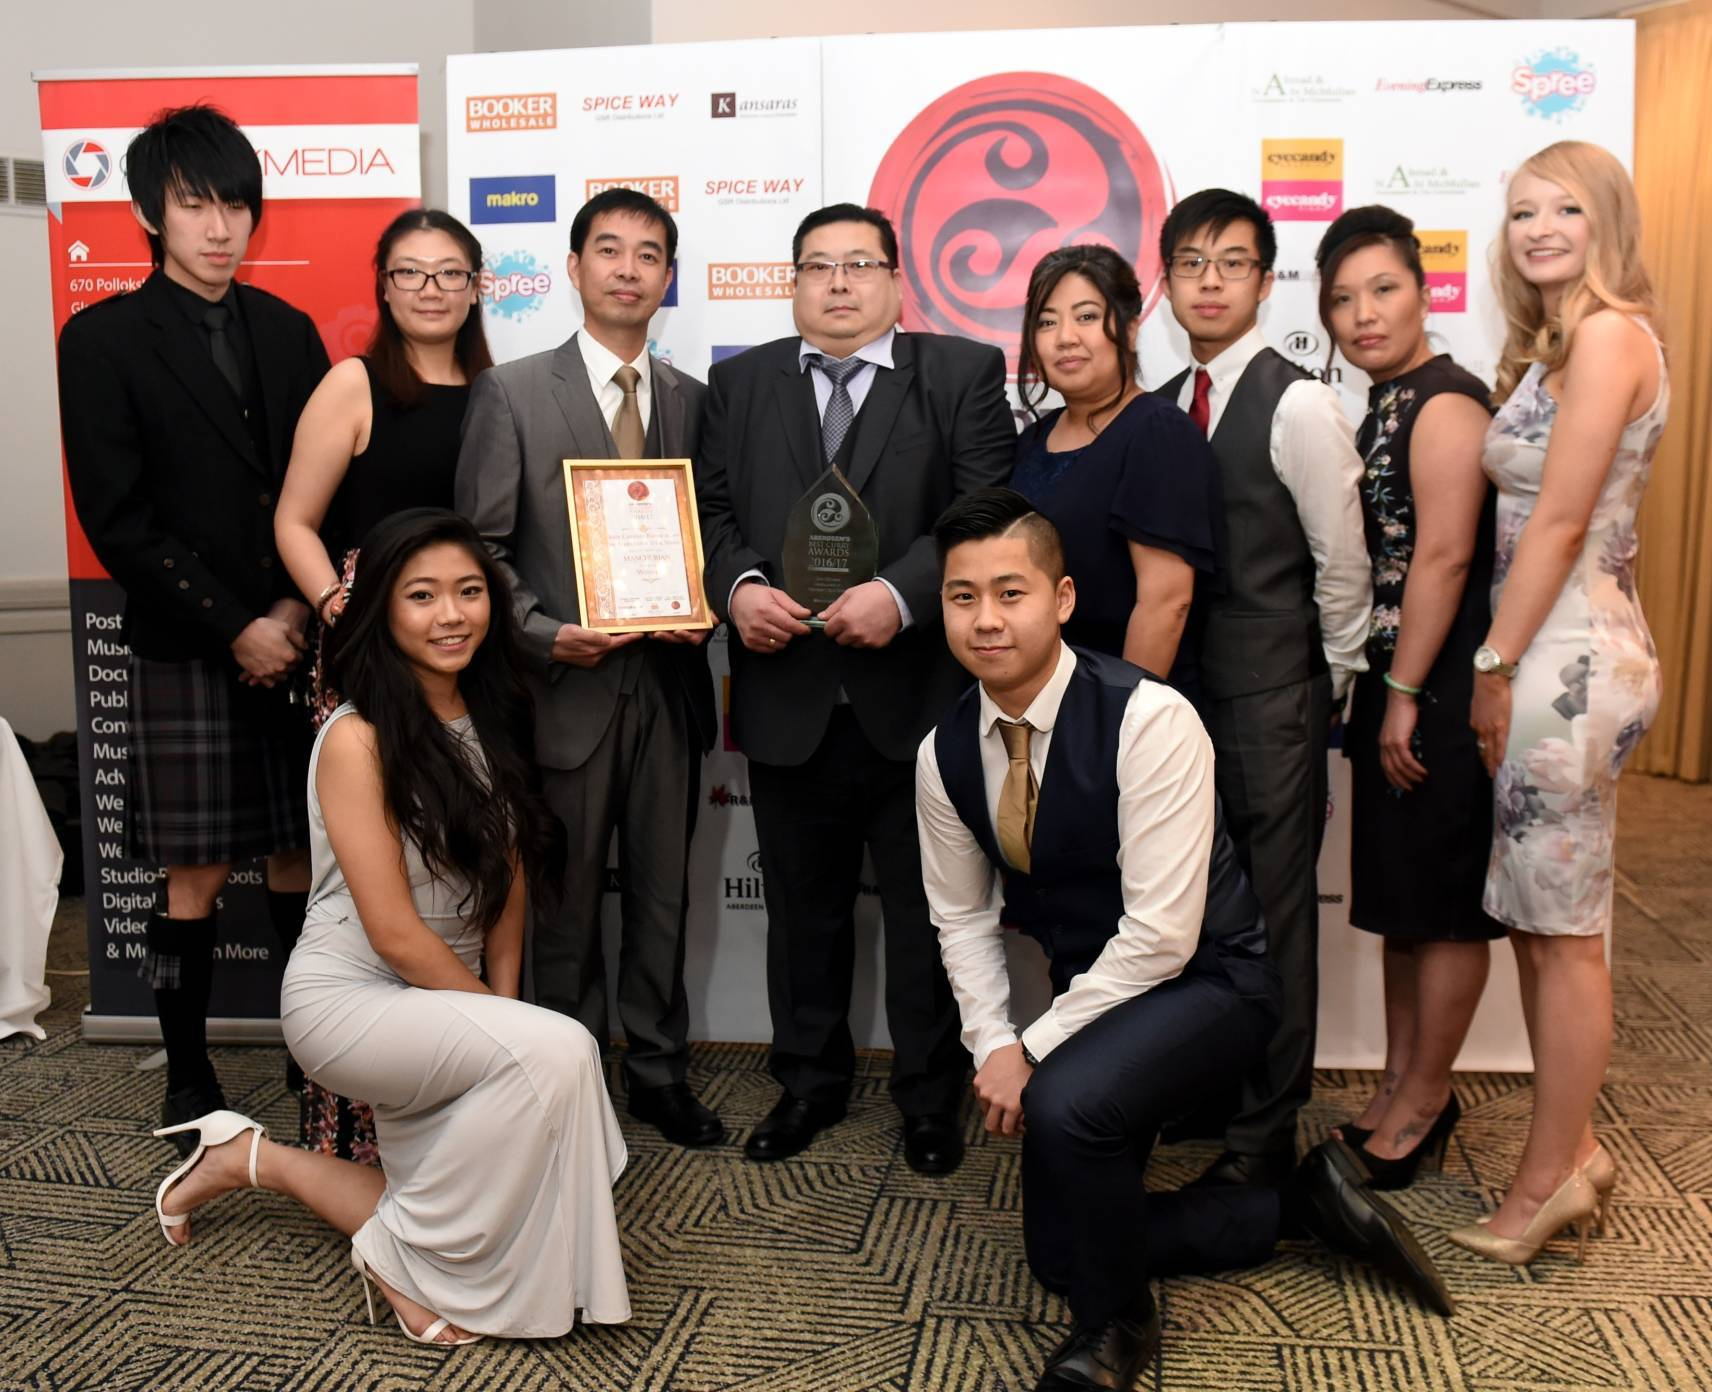 Pictured is the winner of Best Chinese Restaurant: Manchurian.